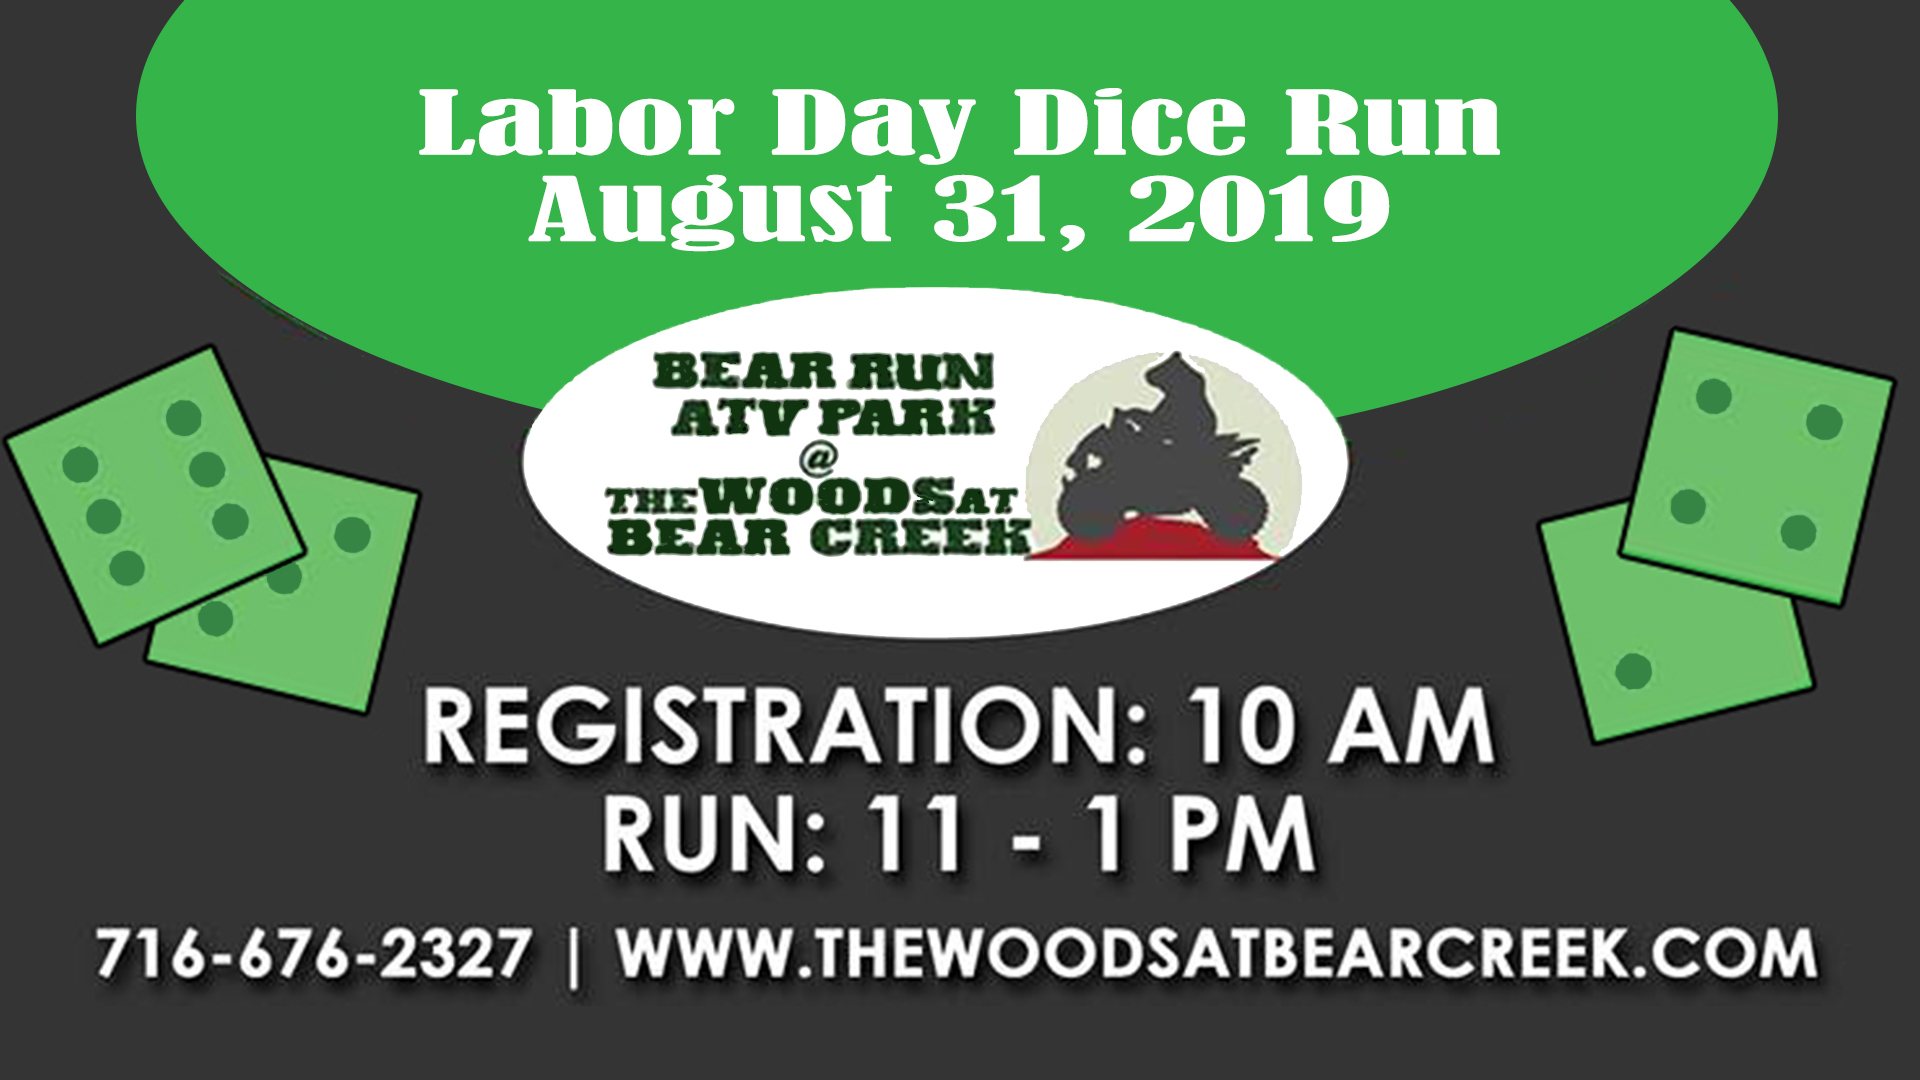 Labor Day 2019 Dice Run at The Woods at Bear Creek